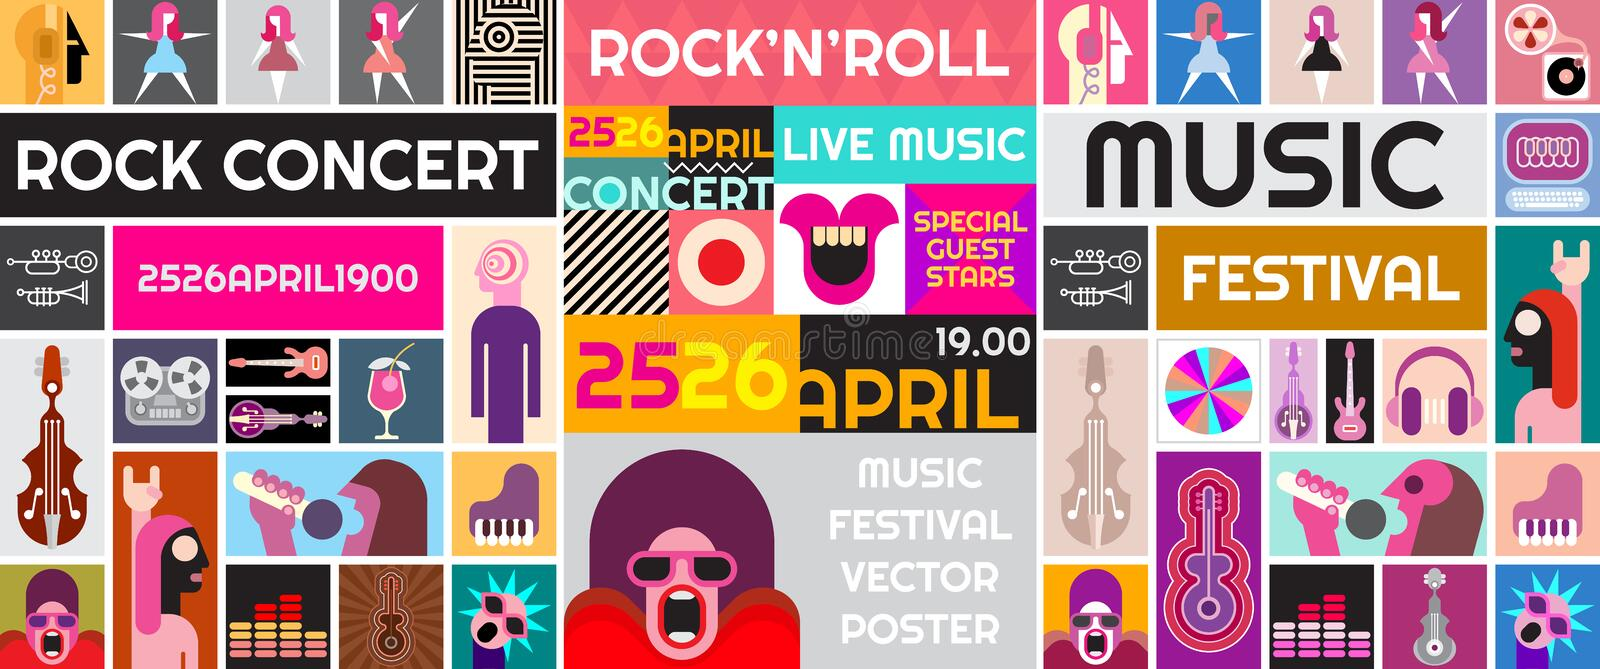 Rock Concert Vector Poster royalty free illustration